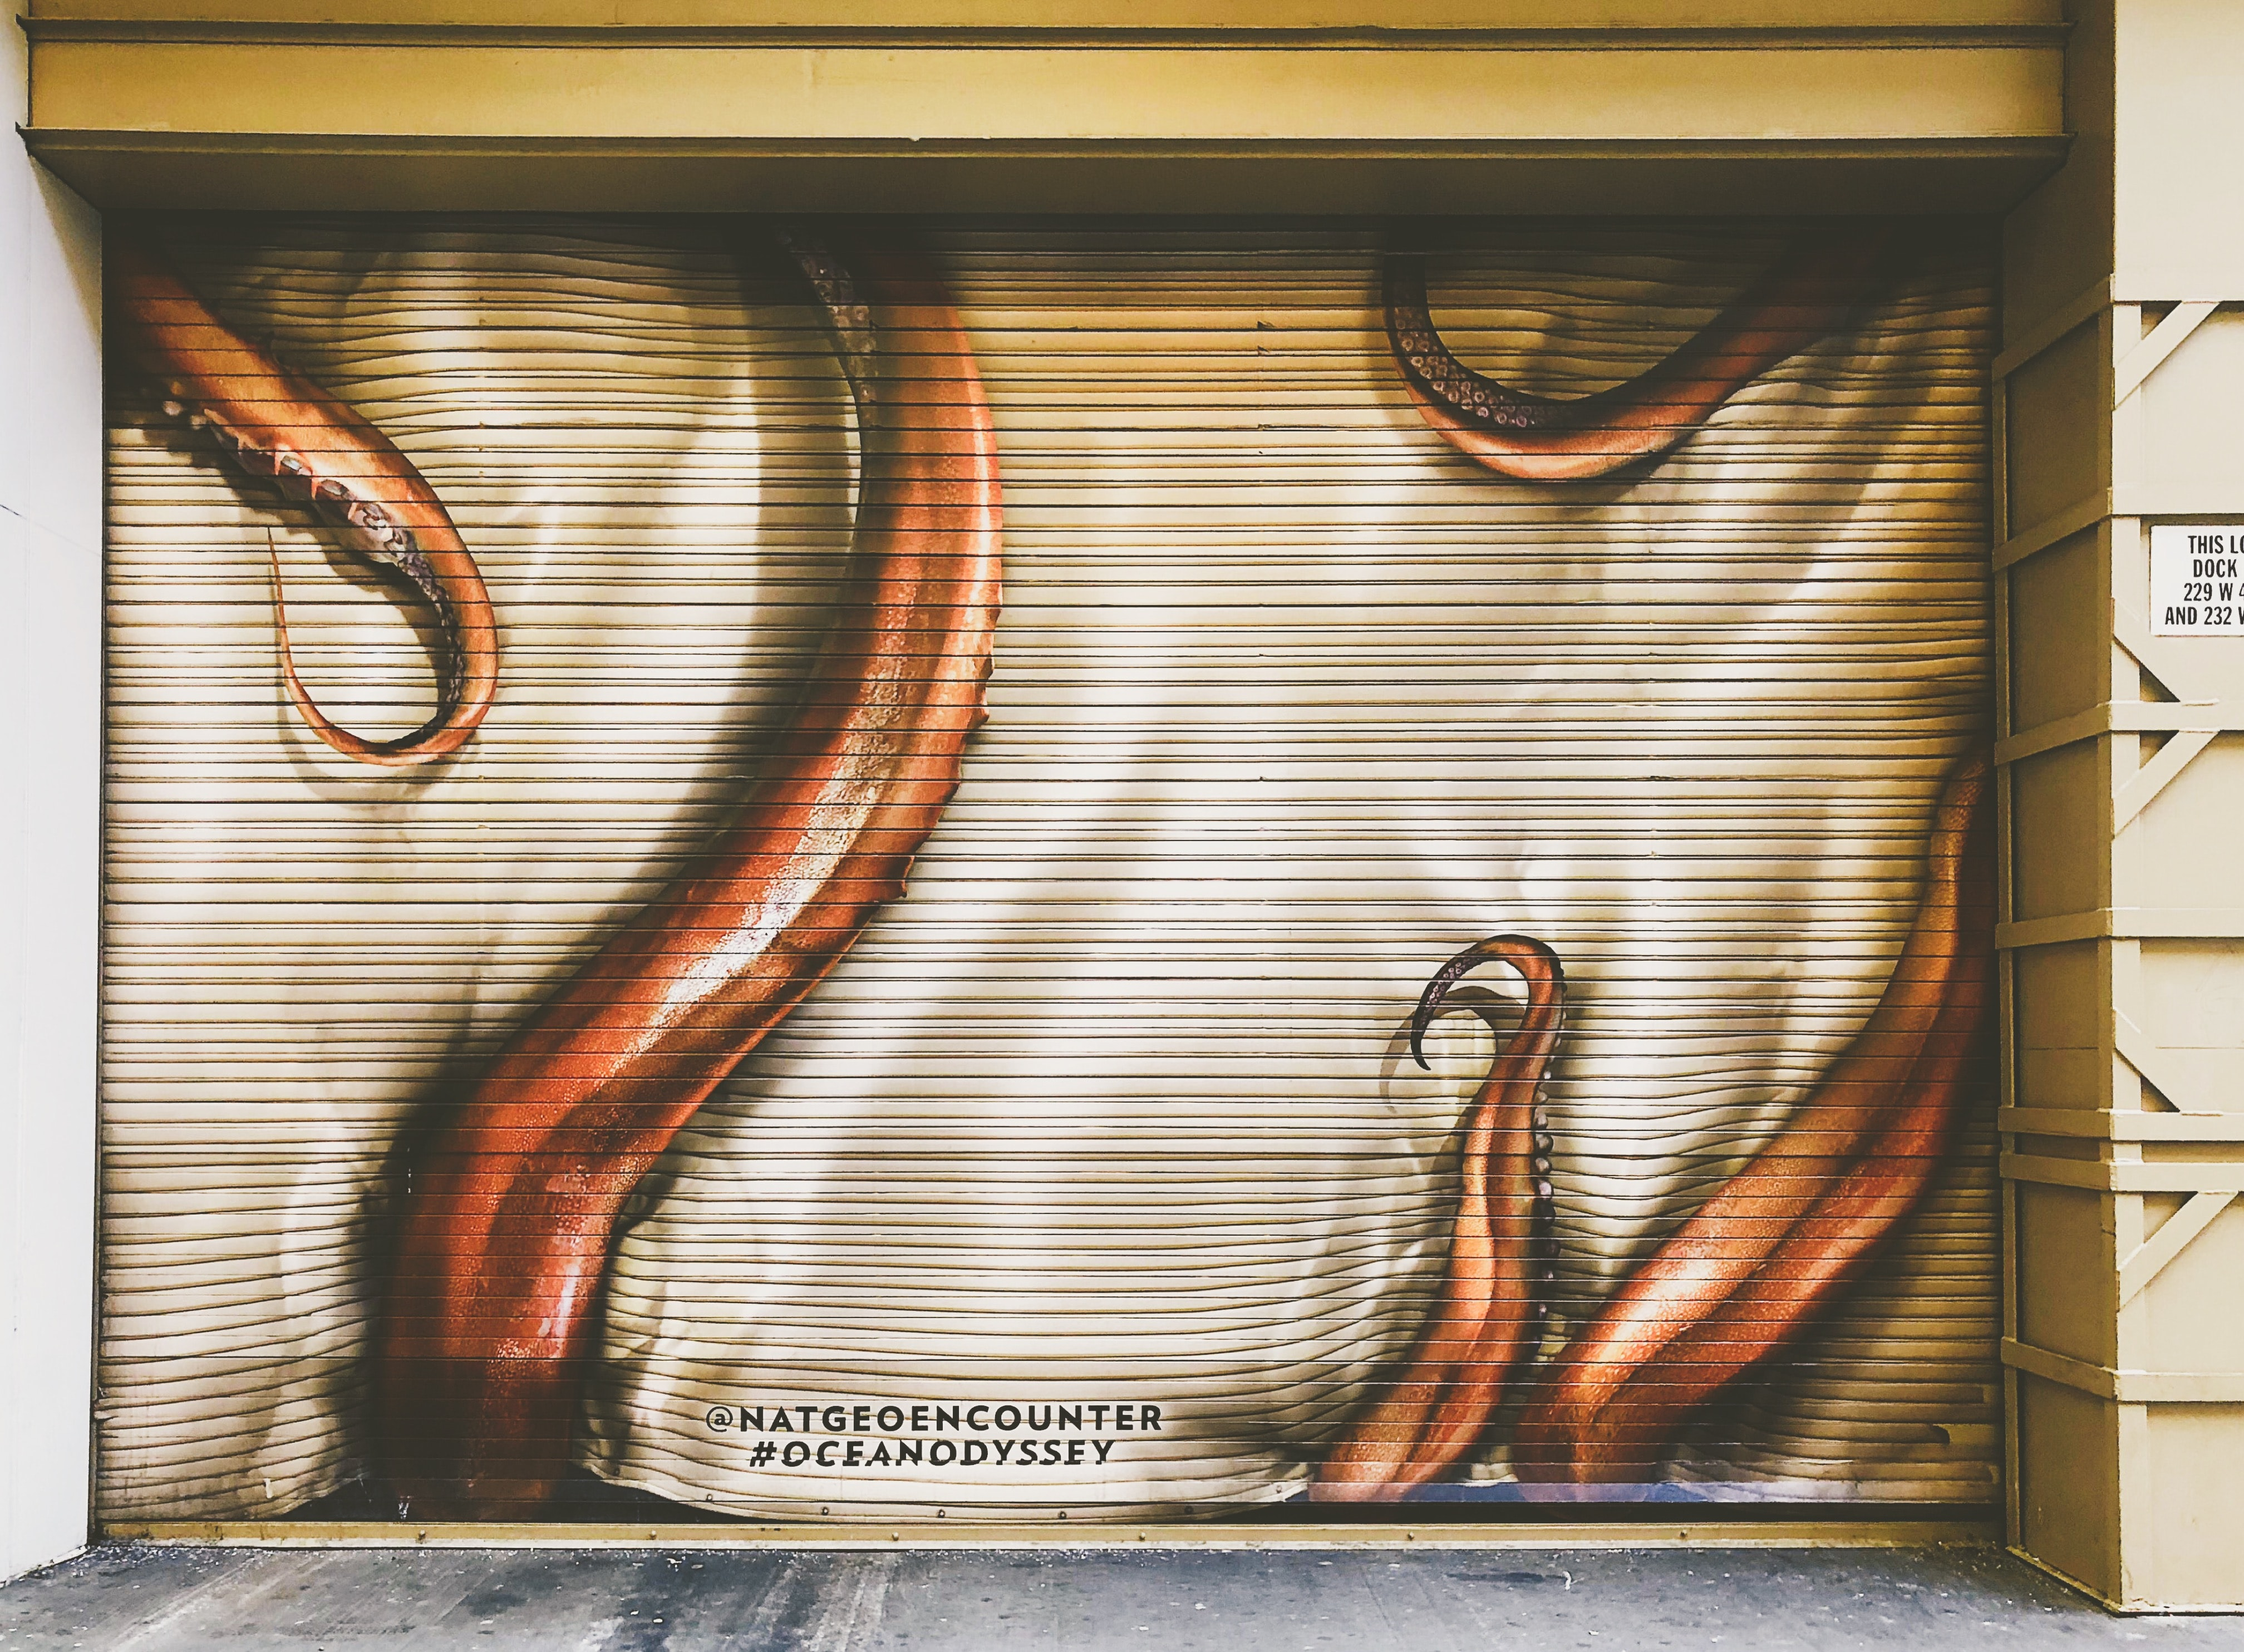 red and white octopus tentacles-printed shutter door